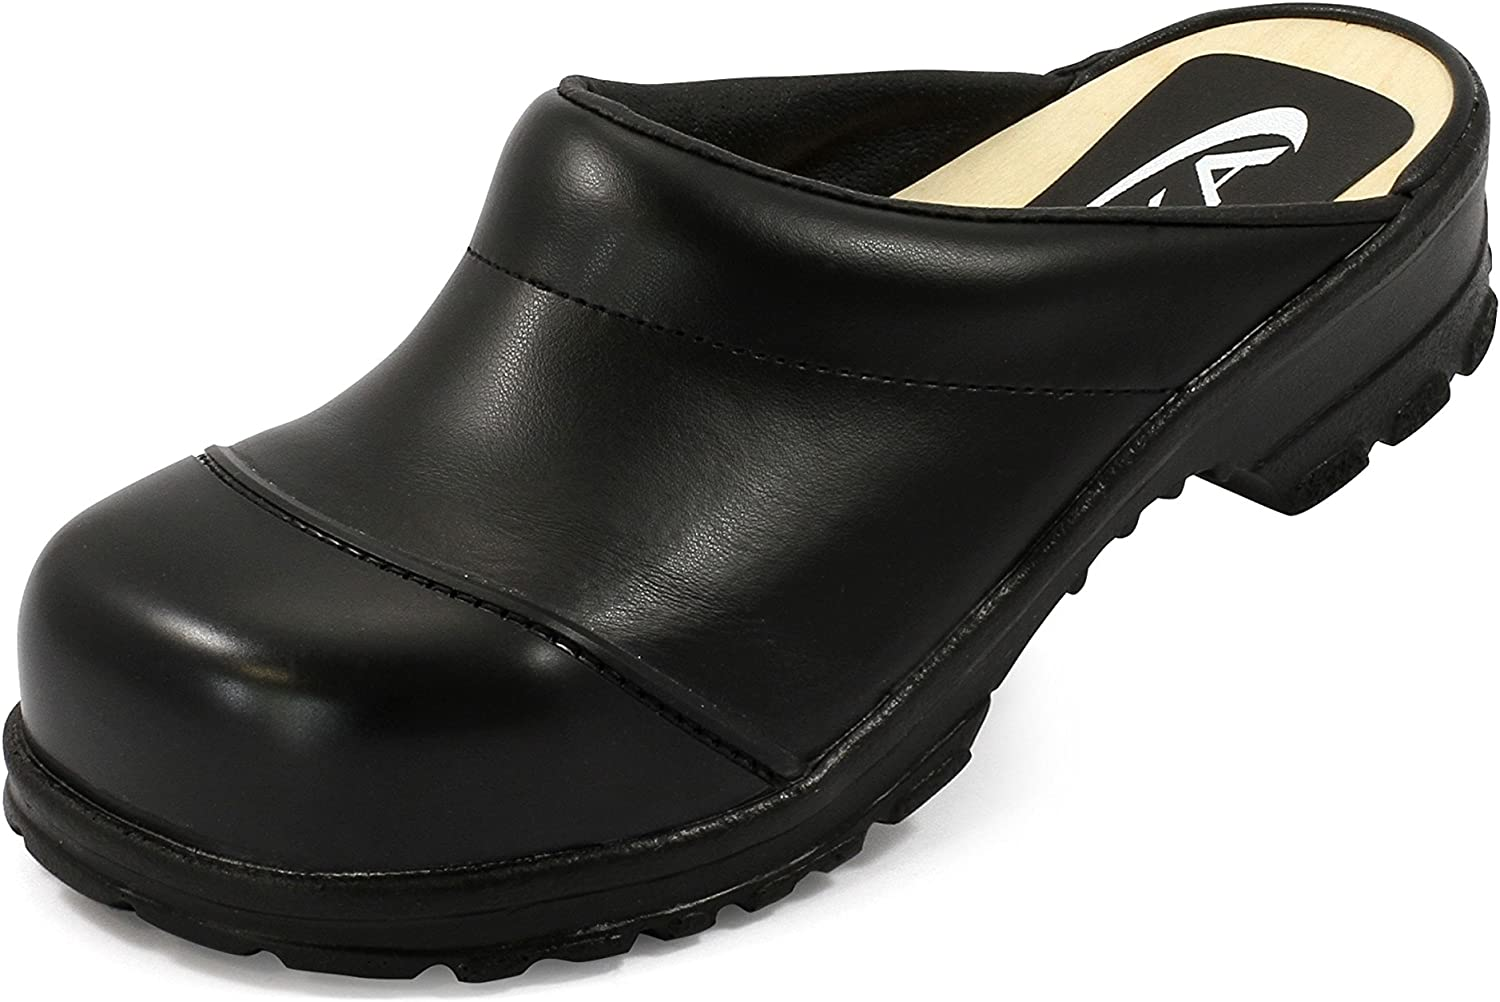 SIKA Comfort Clogs Open with Wooden Sole, Toe Cap, Black, SB SRC